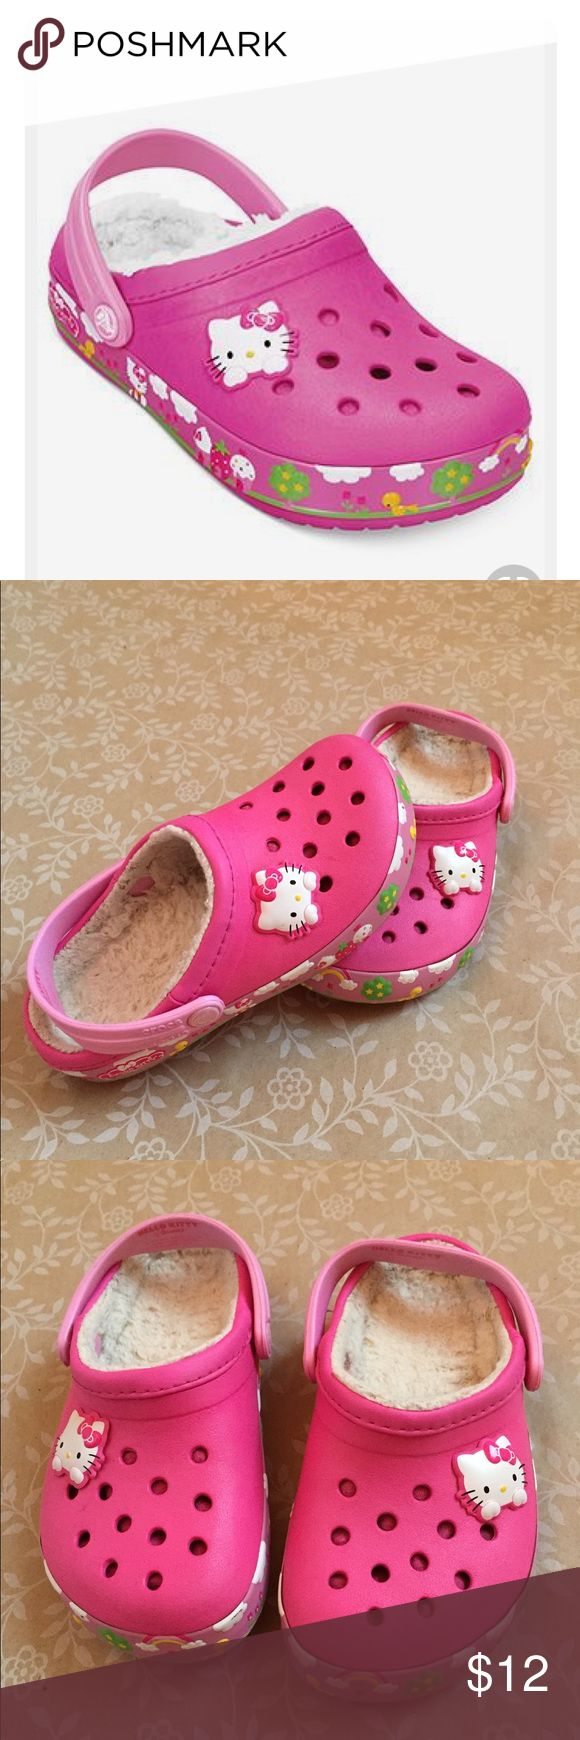 CROCS Hello Kitty Fuzz Lined girl's Crocs CROCS Hello Kitty Fuzz Lined girl's Crocs are perfect for Fall! The fuzz lining helps keep little feet warm as they go jumping into the piles of leaves! CROCS Shoes Mules & Clogs